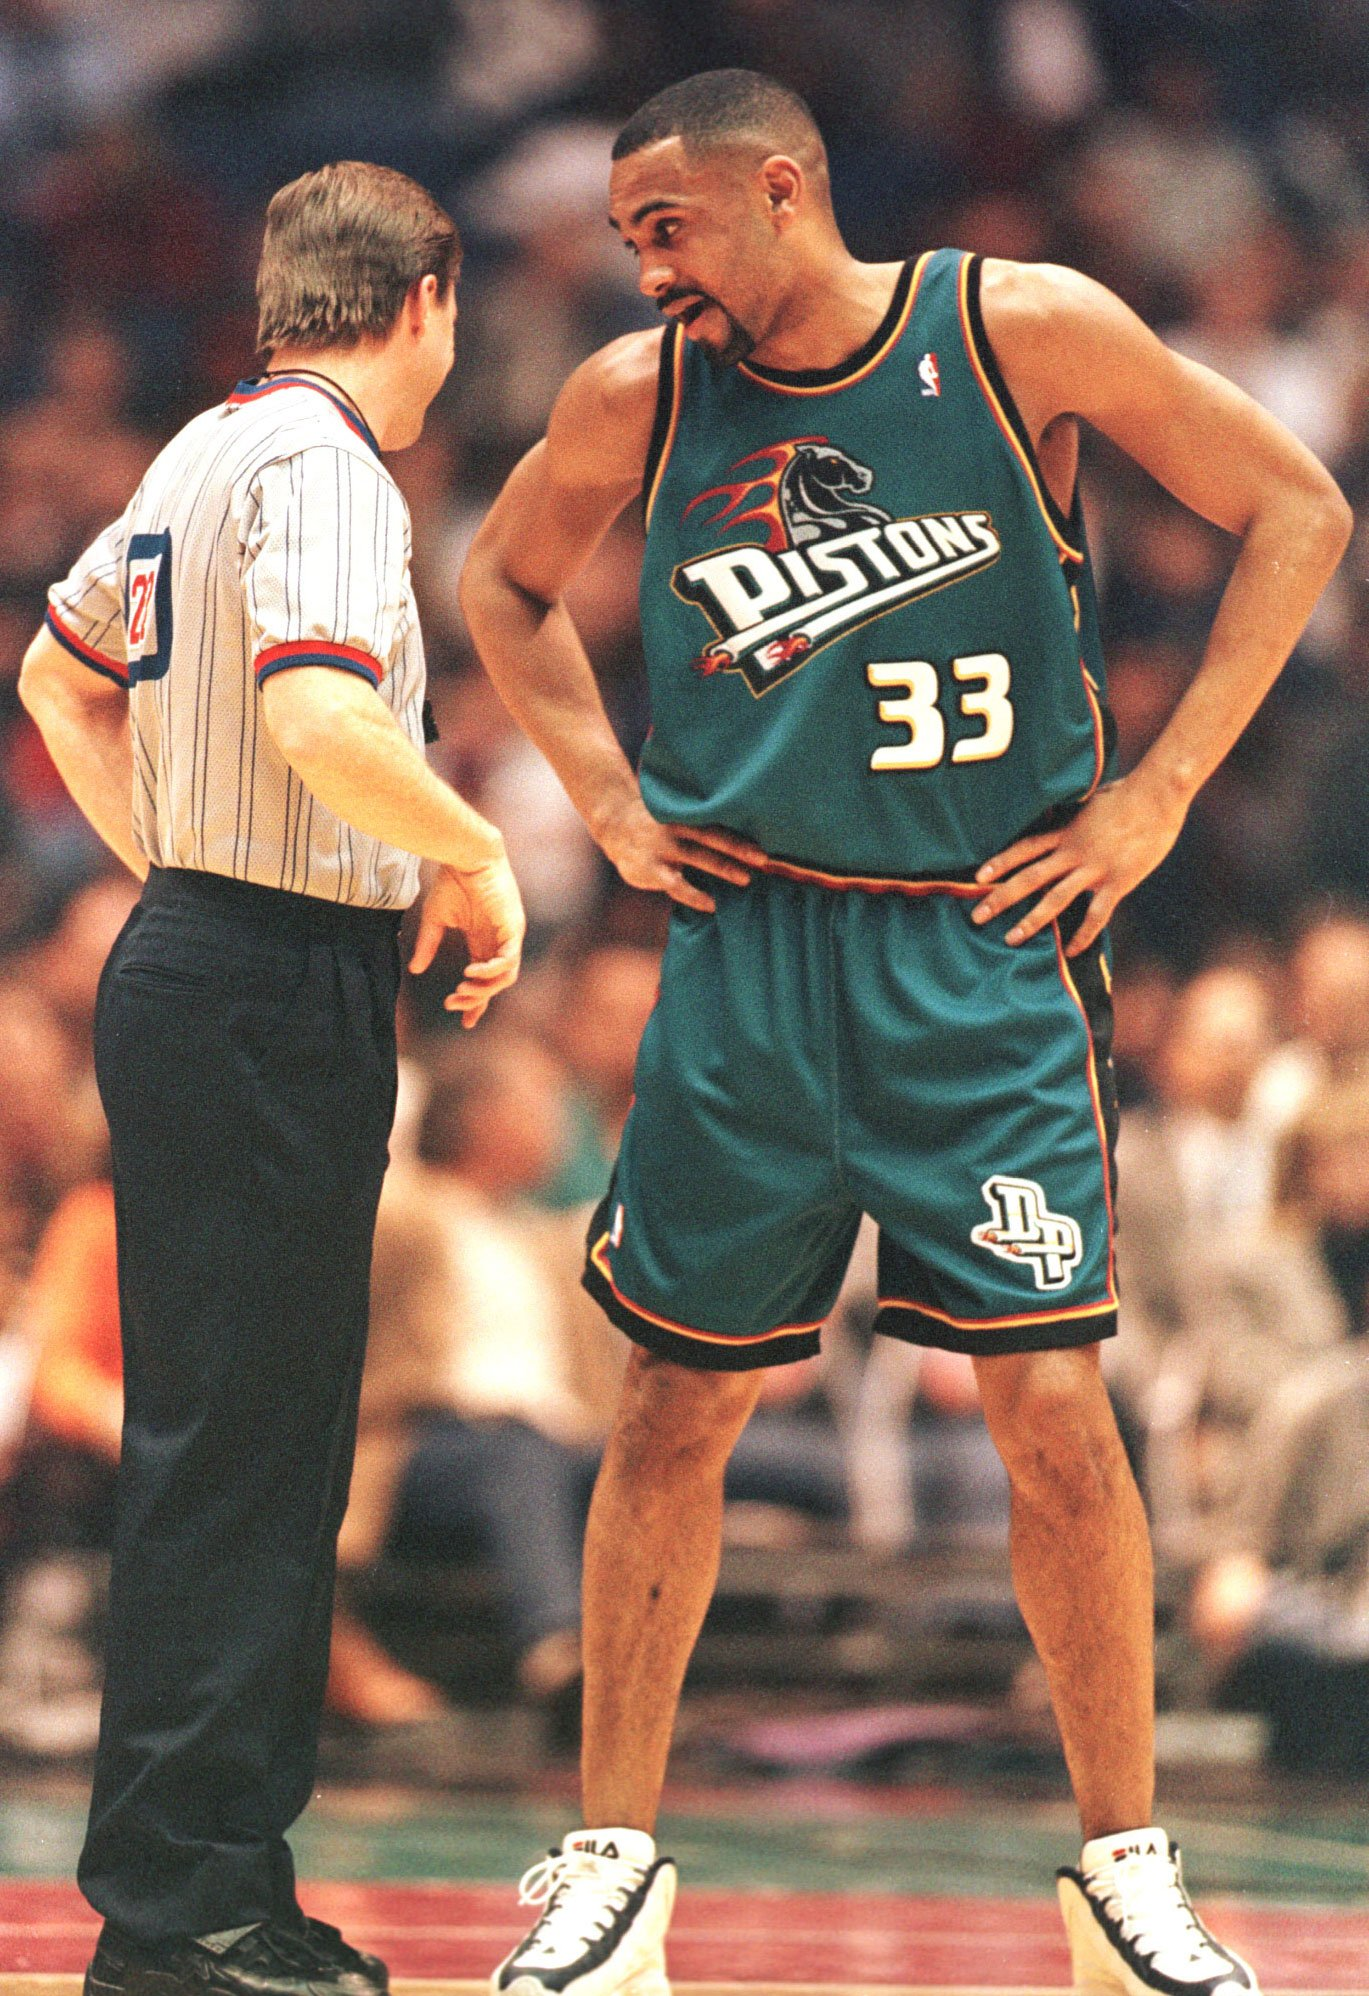 The Detroit Pistons had a great logo, and this particular jersey looked great in white. And while the red version wasn't very appealing, it didn't compare to this eye sore in teal.